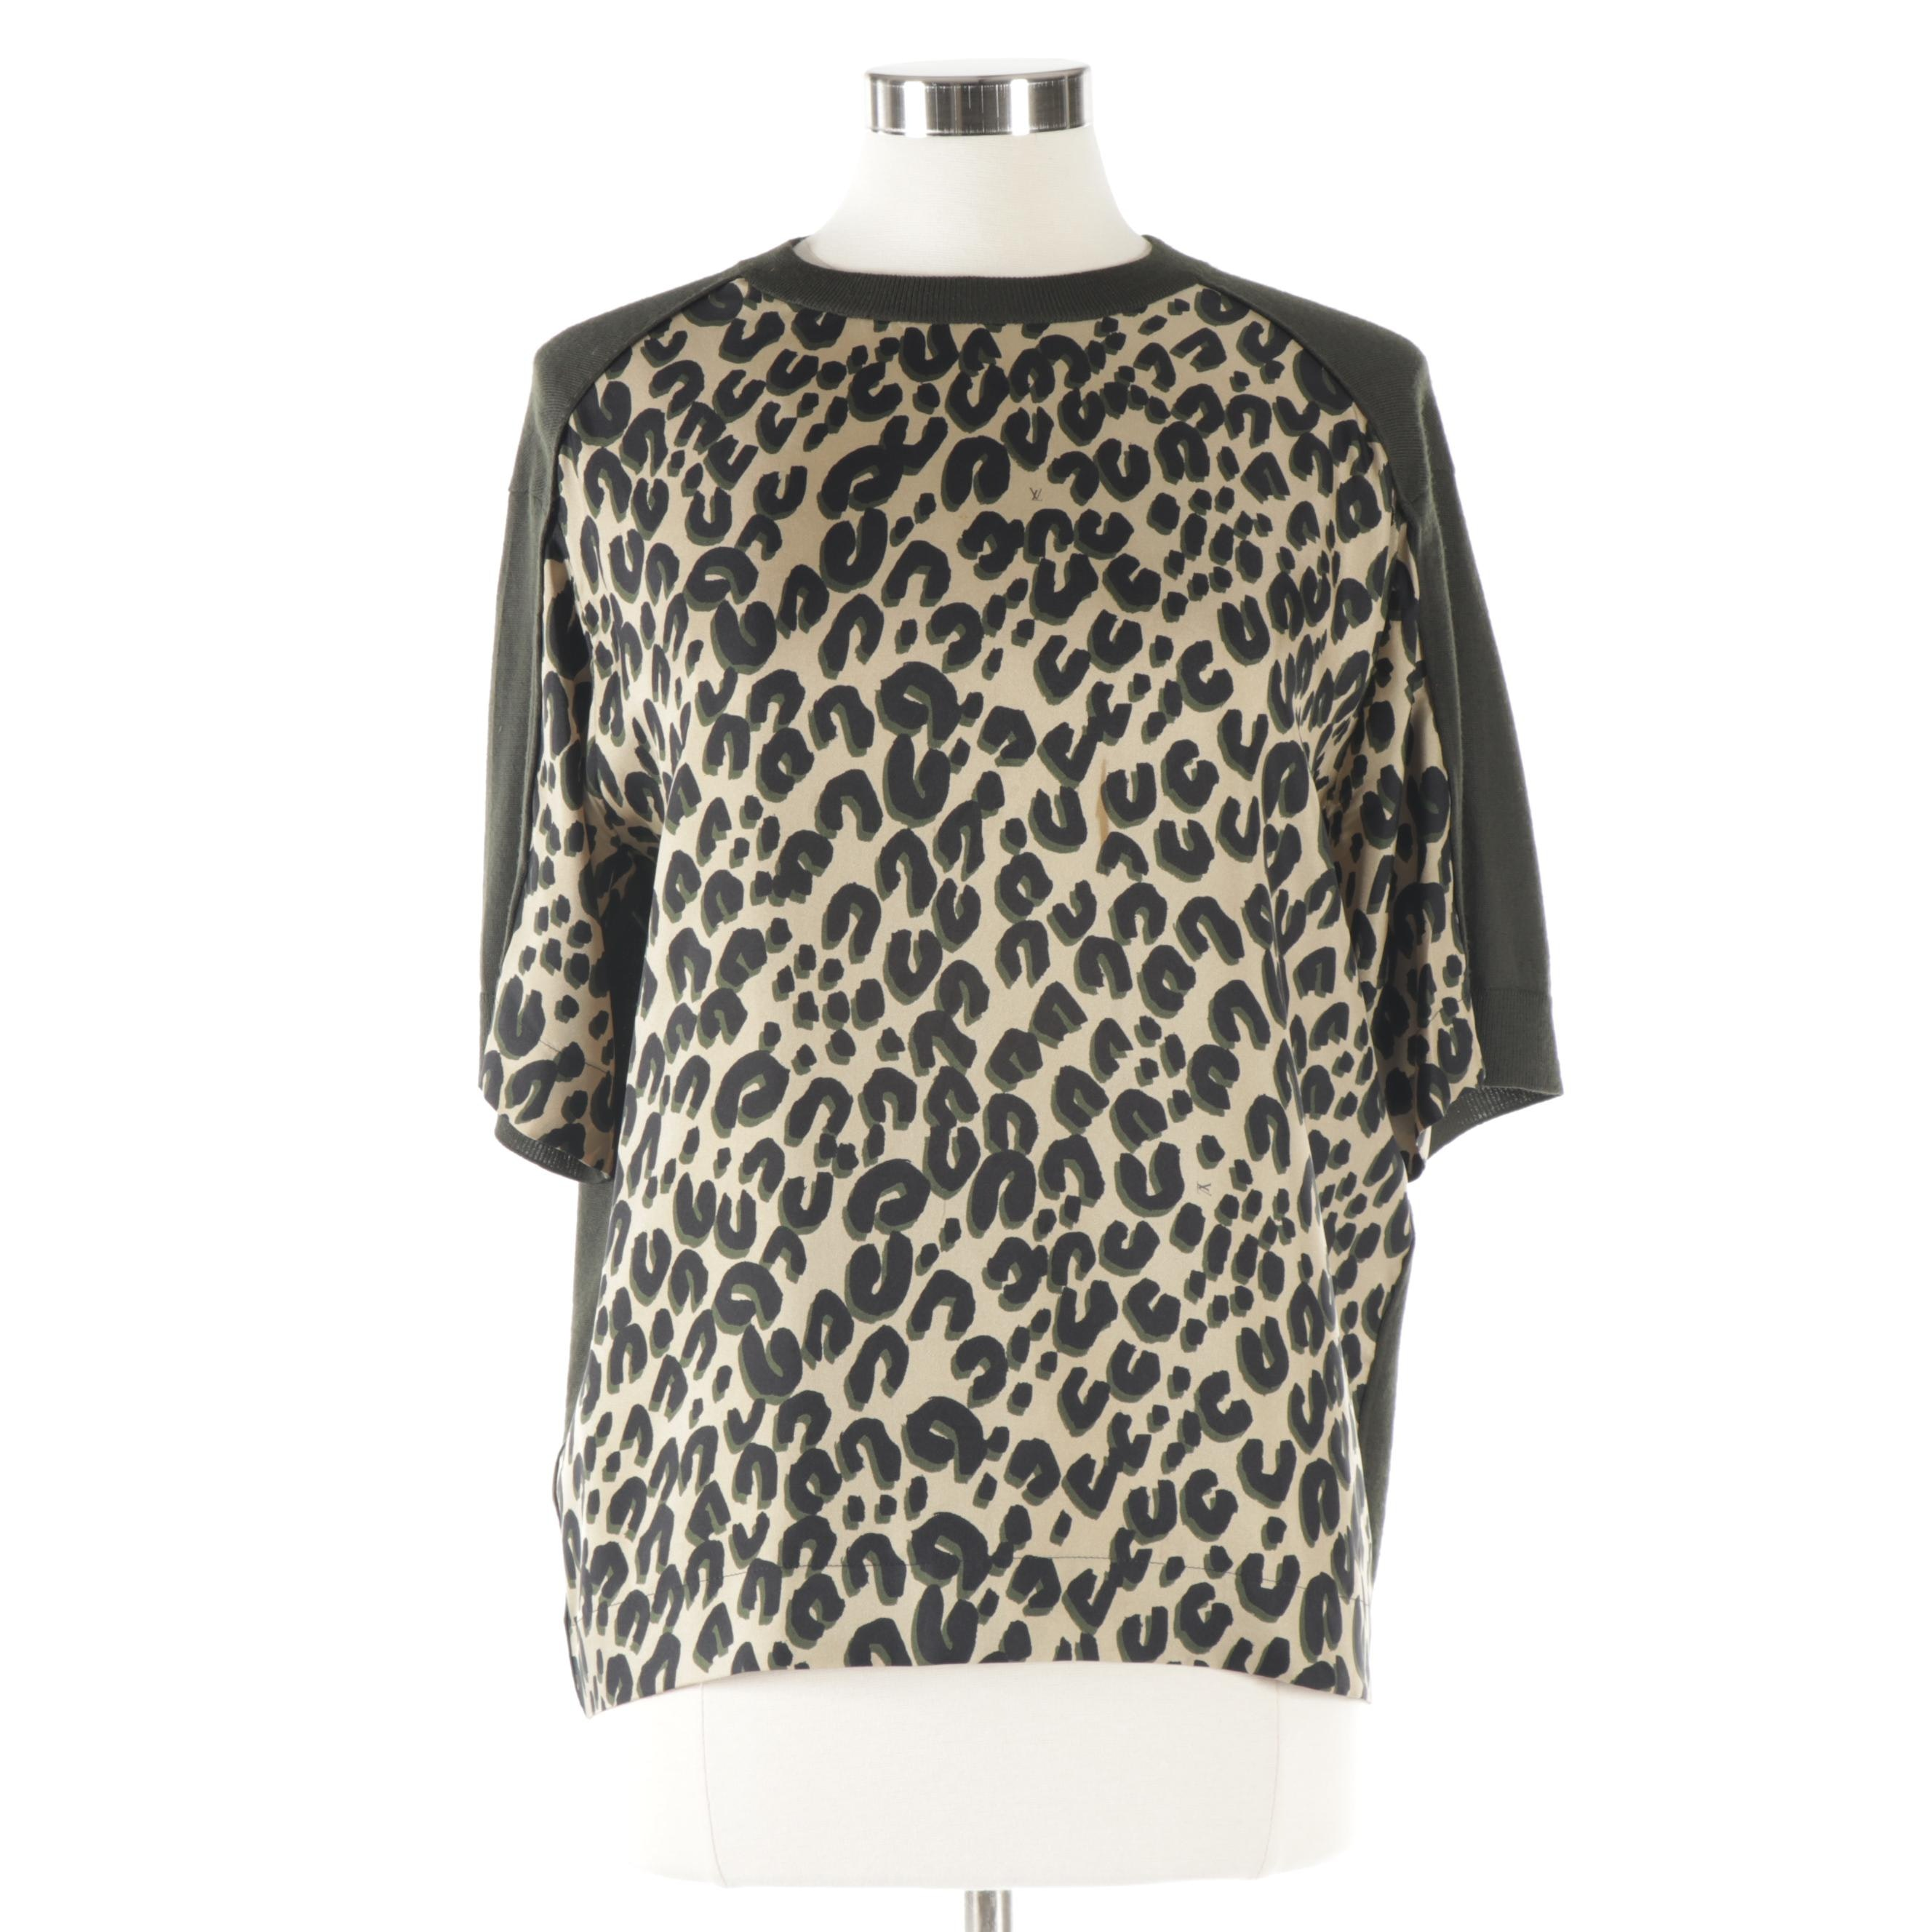 Louis Vuitton Paris Merino Wool and Silk Cheetah Print Shirt, Made in Italy